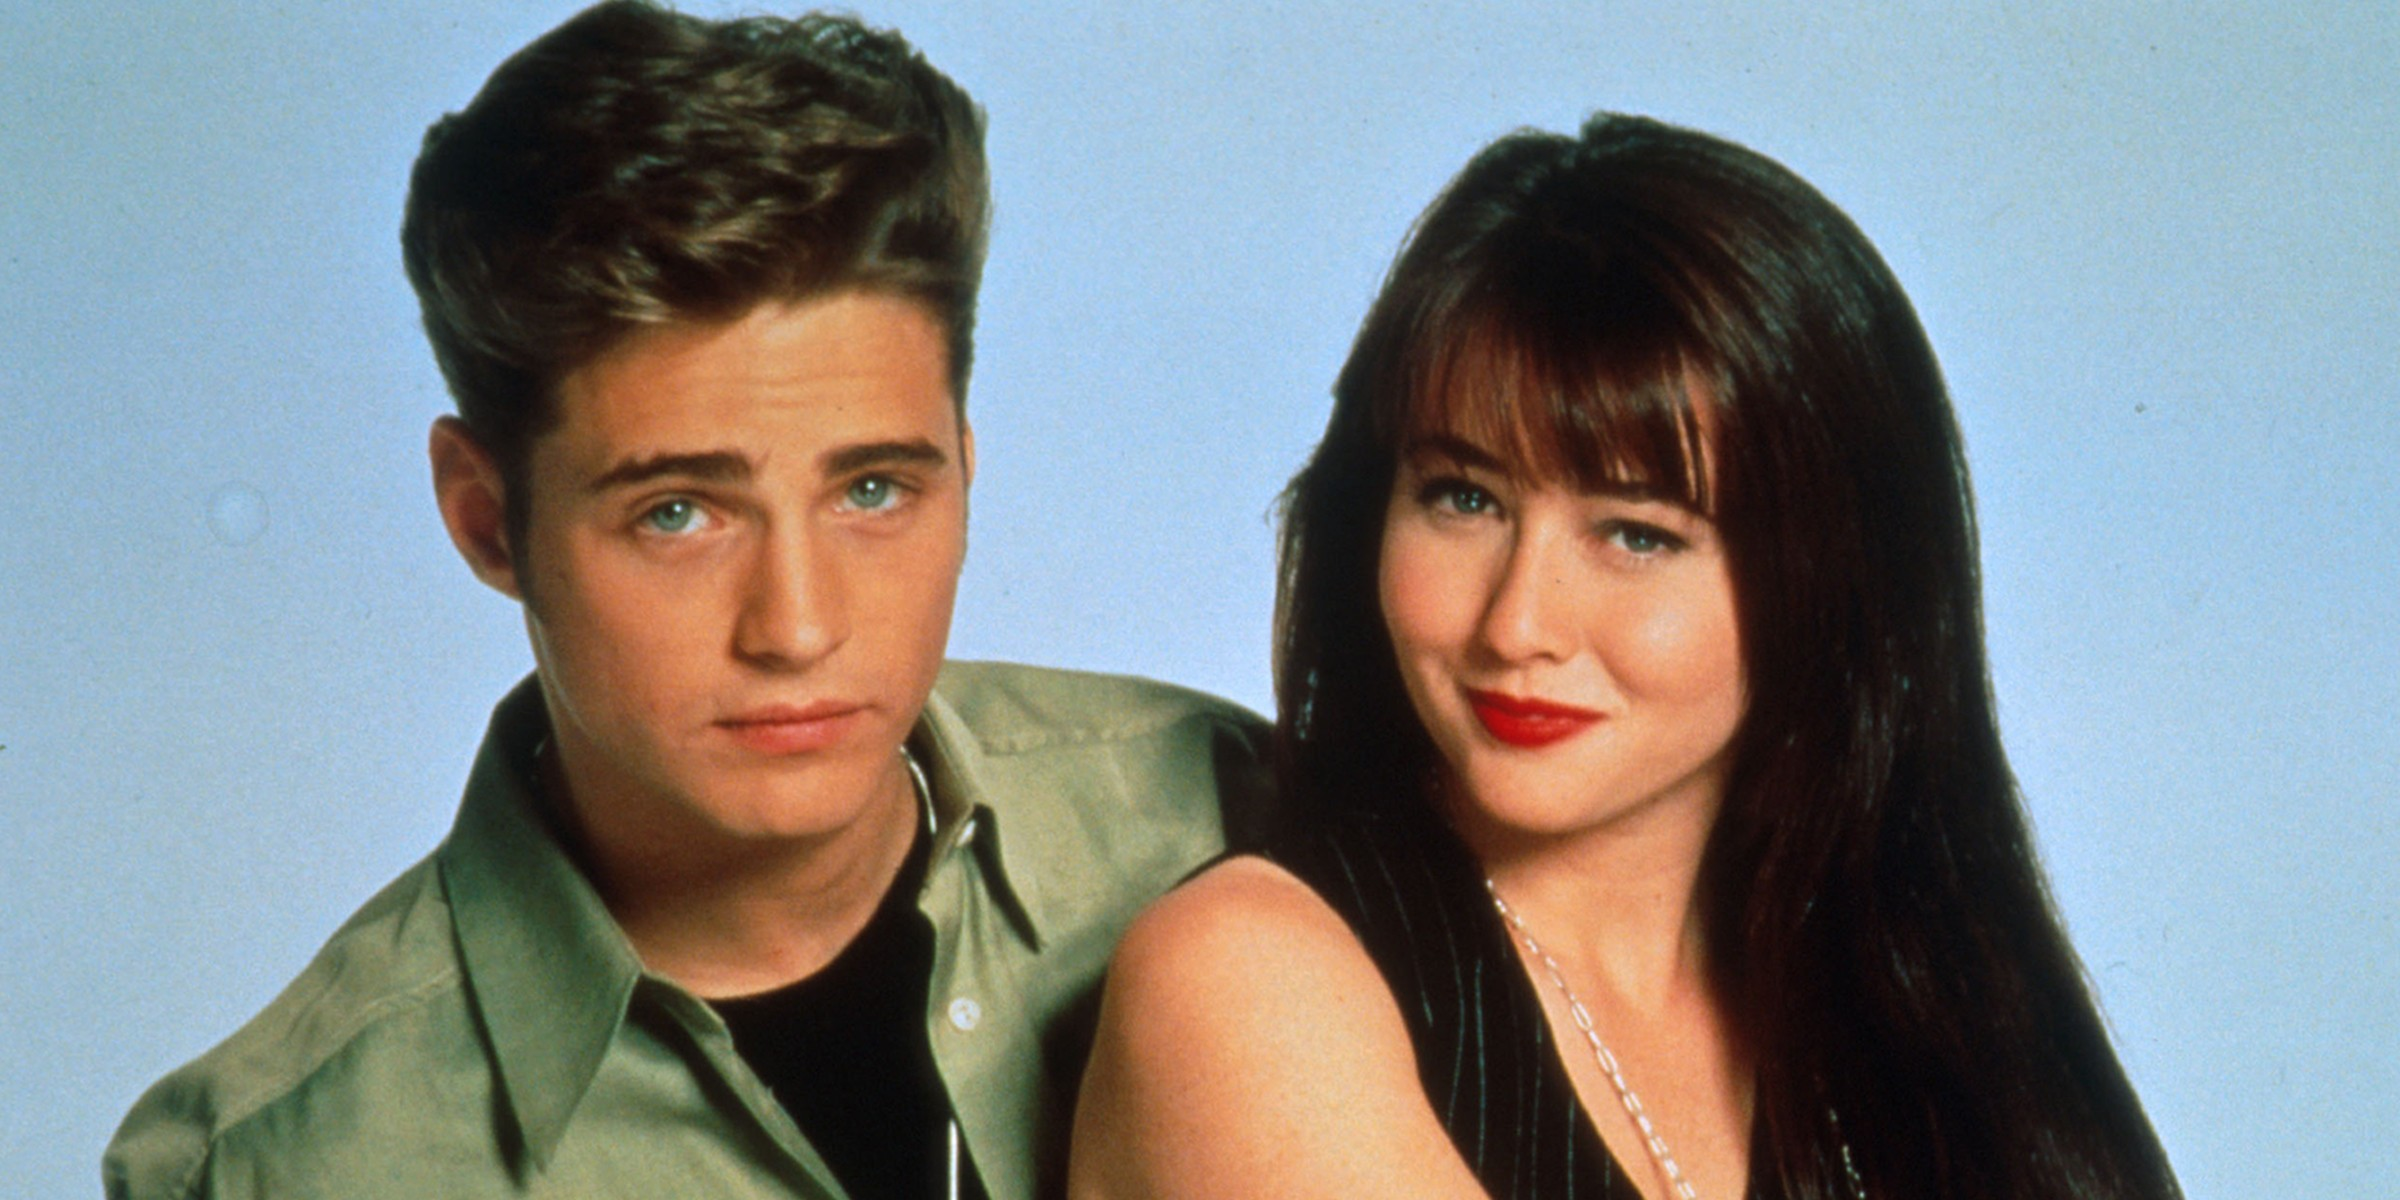 B7YFCM Beverly Hills, 90210 TV-Series 1990-2000 USA Created by Darren Star Shannen Doherty, Jason Priestley. Image shot 1990. Exact date unknown. (Foto: Alamy Stock Photo)